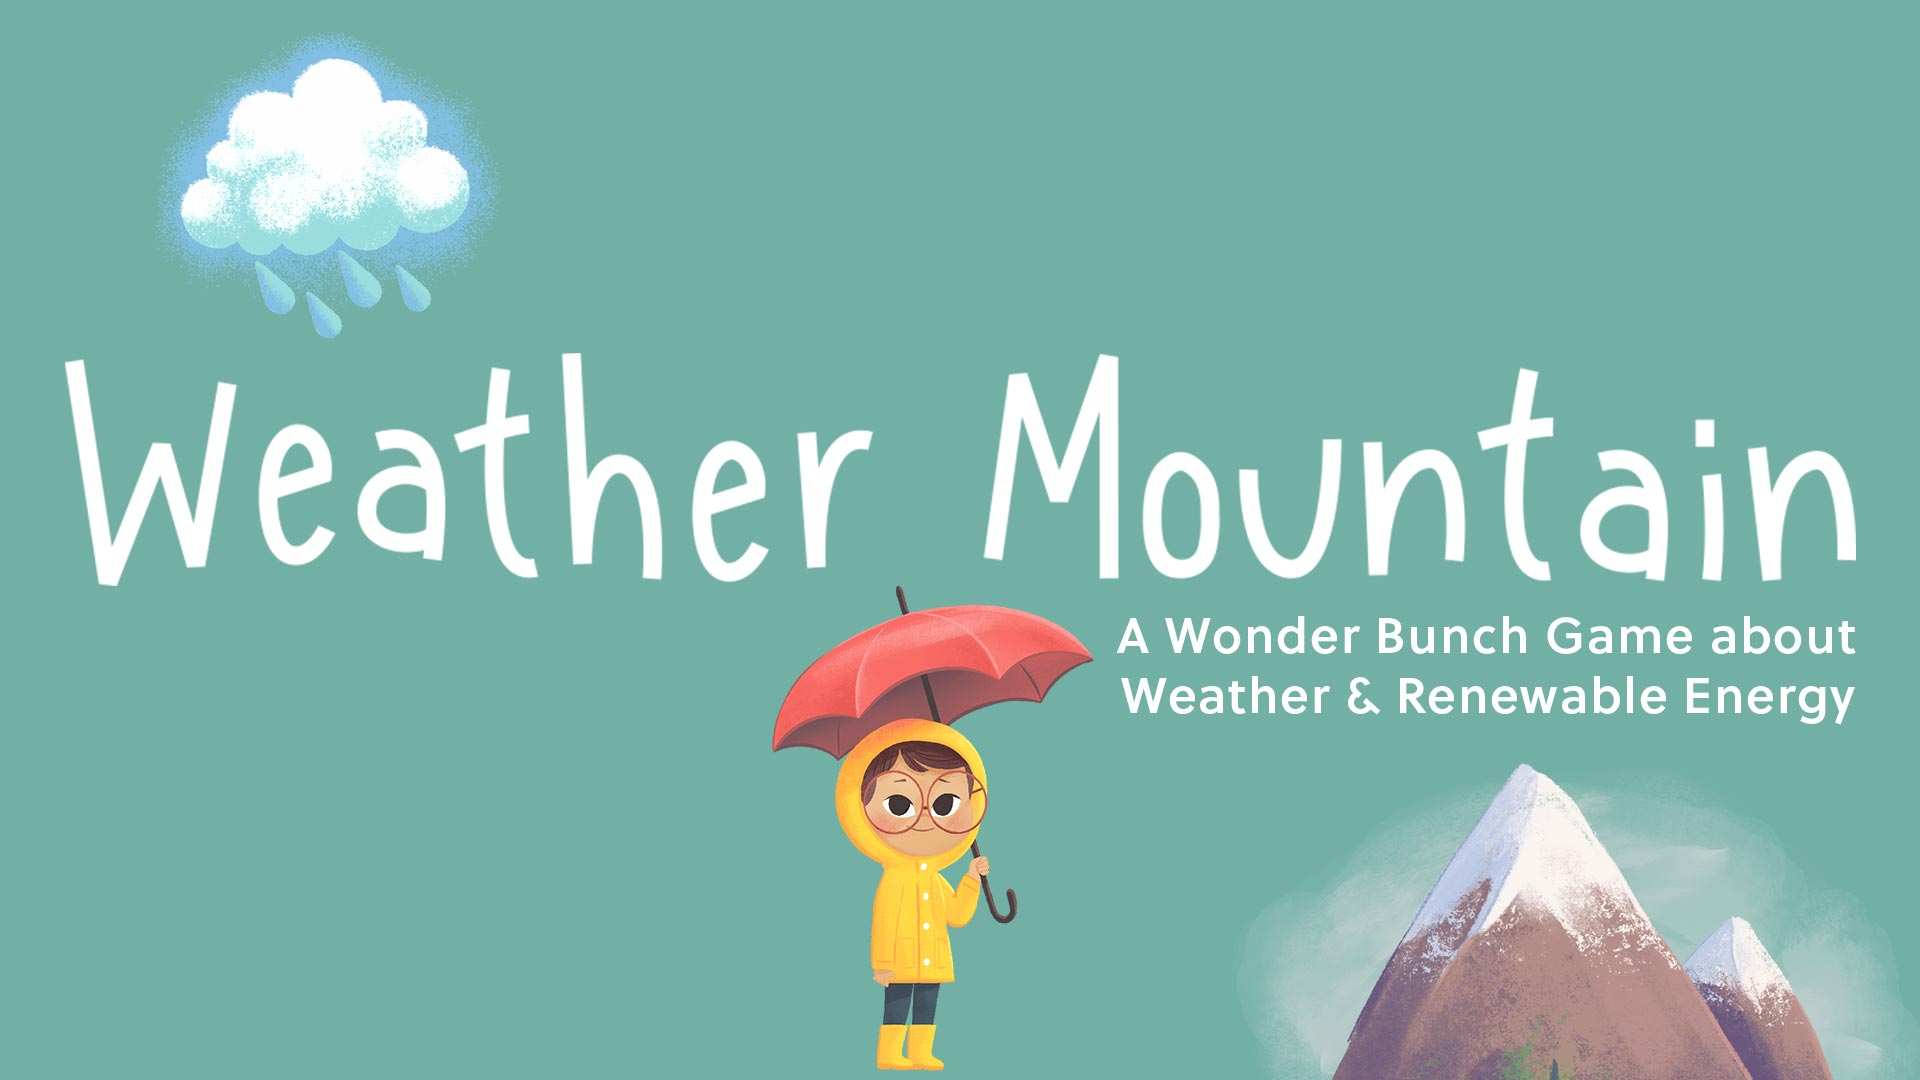 Weather Mountain - A Wonder Bunch Game about Weather and Renewable Energy